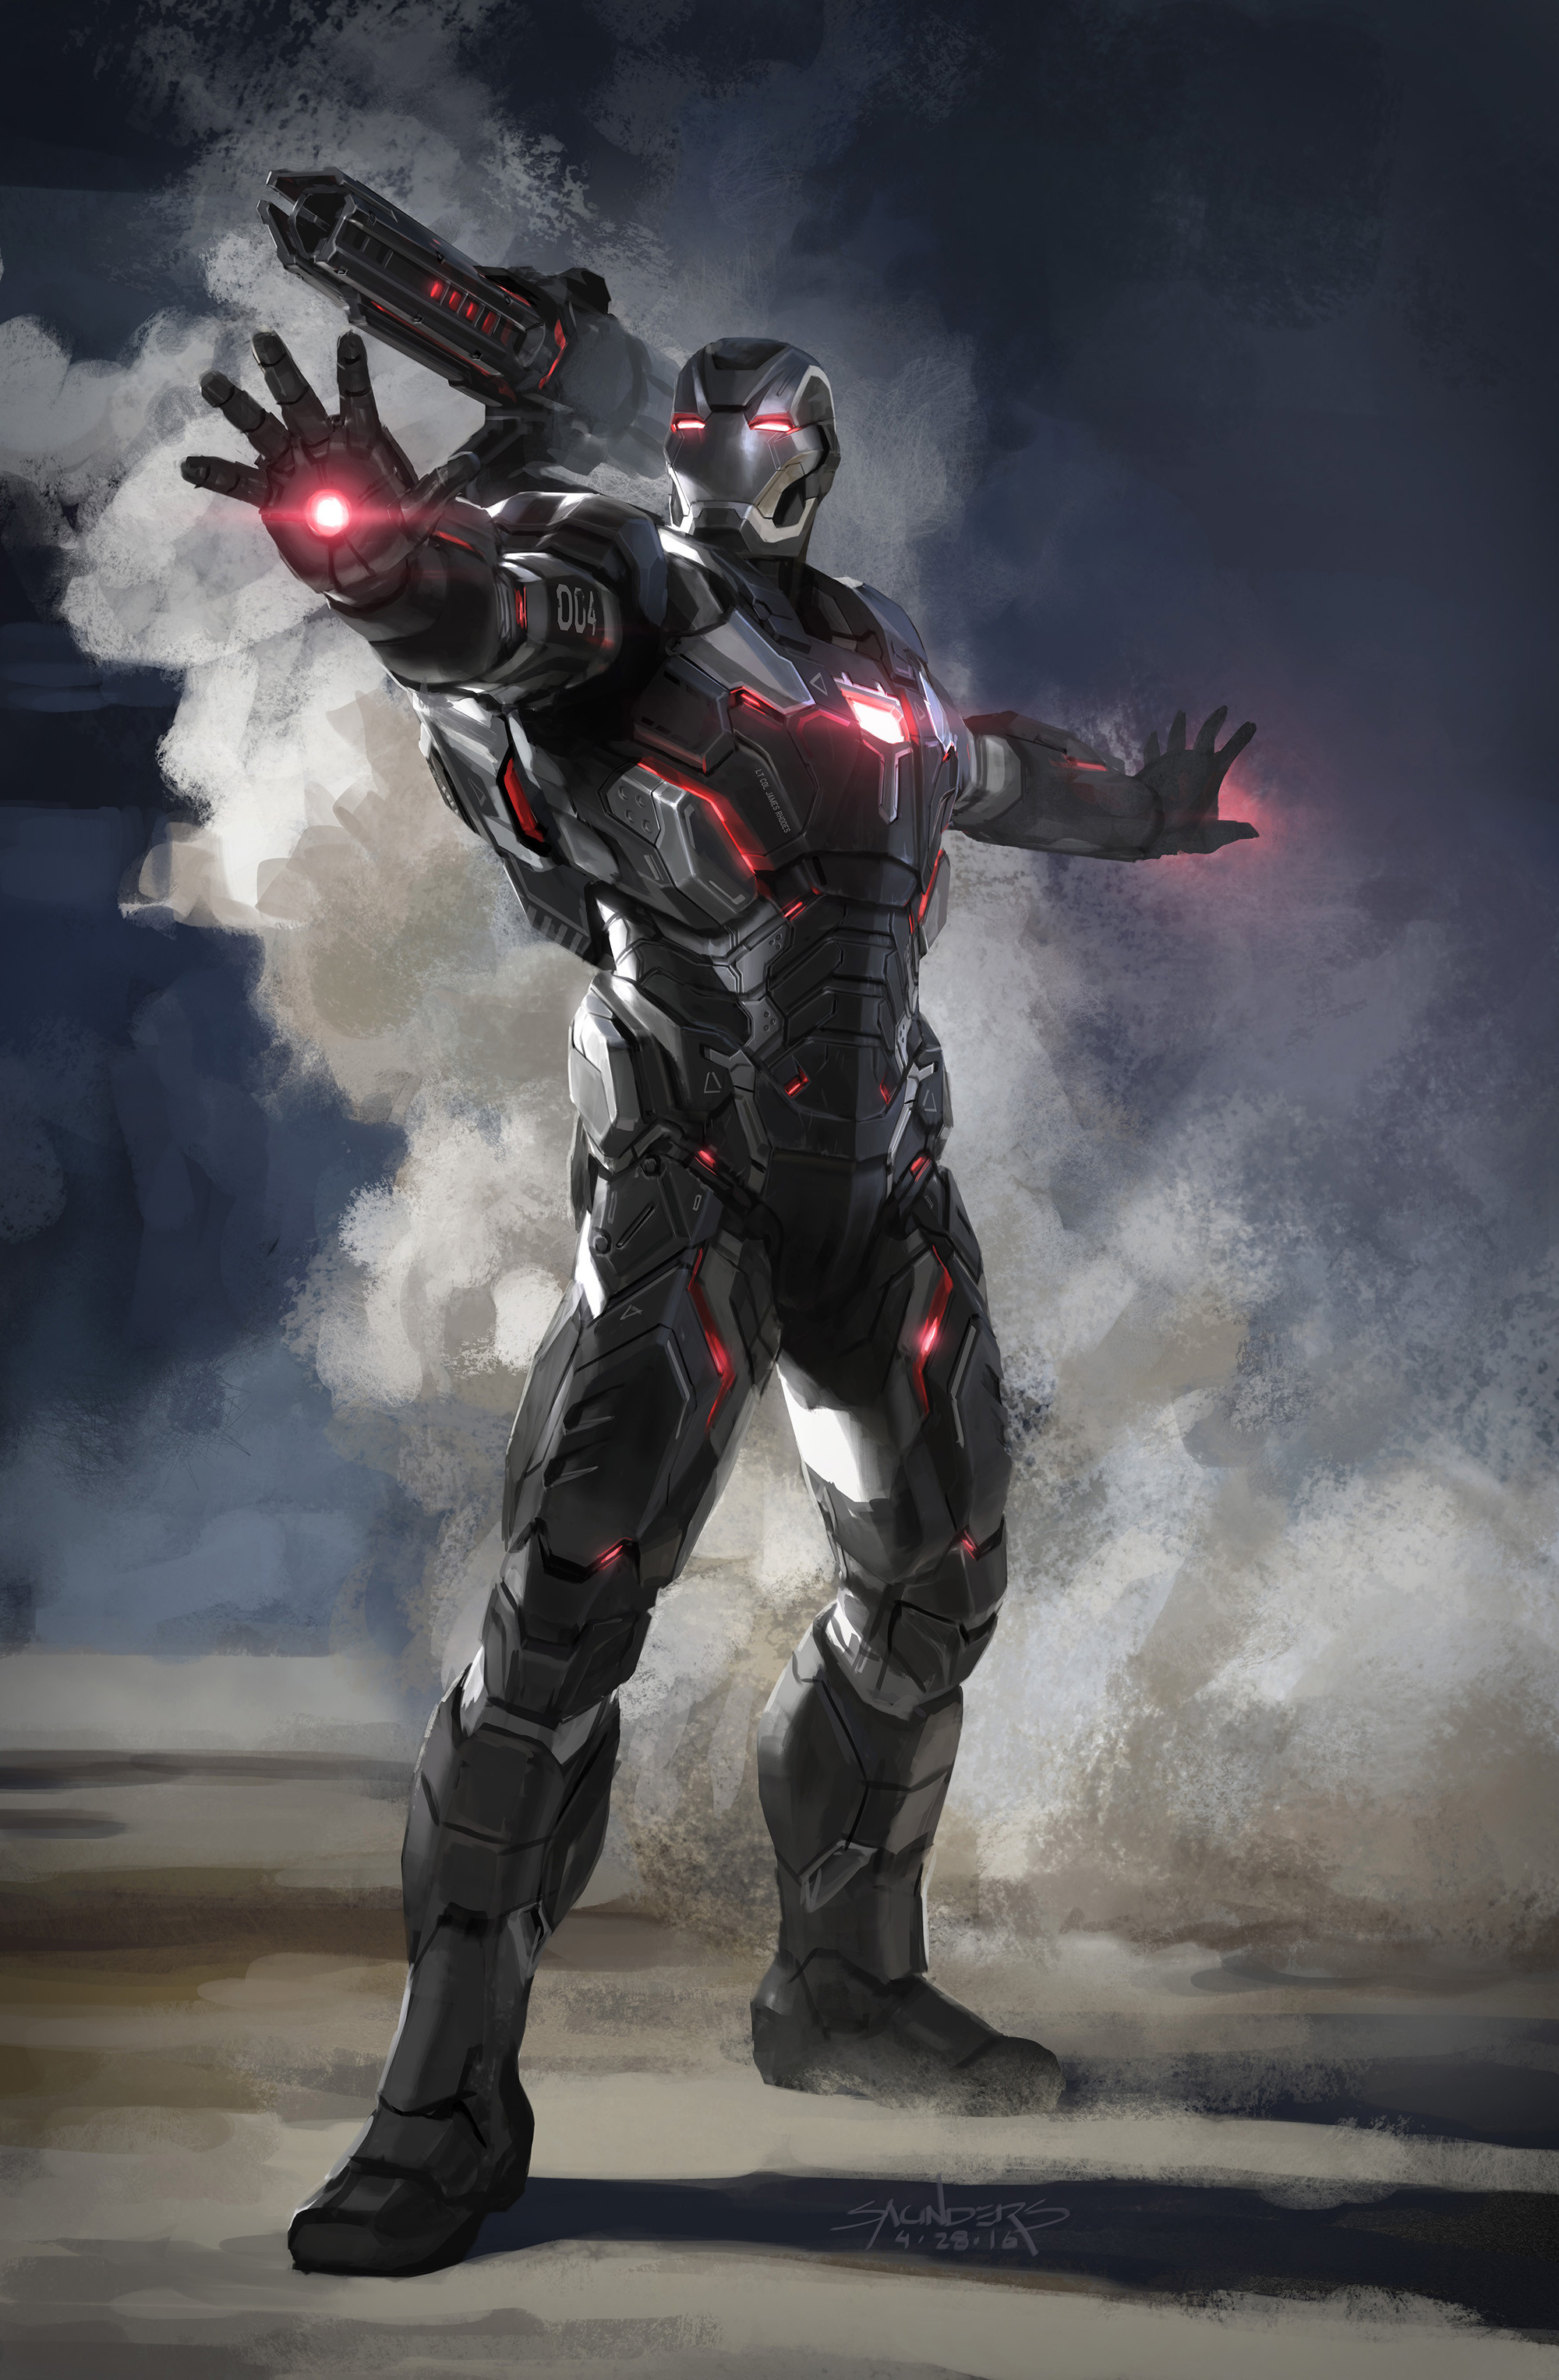 Original concept sketch for the Mk IV War Machine suit. Was trying to go for a more advanced, faceted look to contrast with the extreme organic look of IM Mk50.